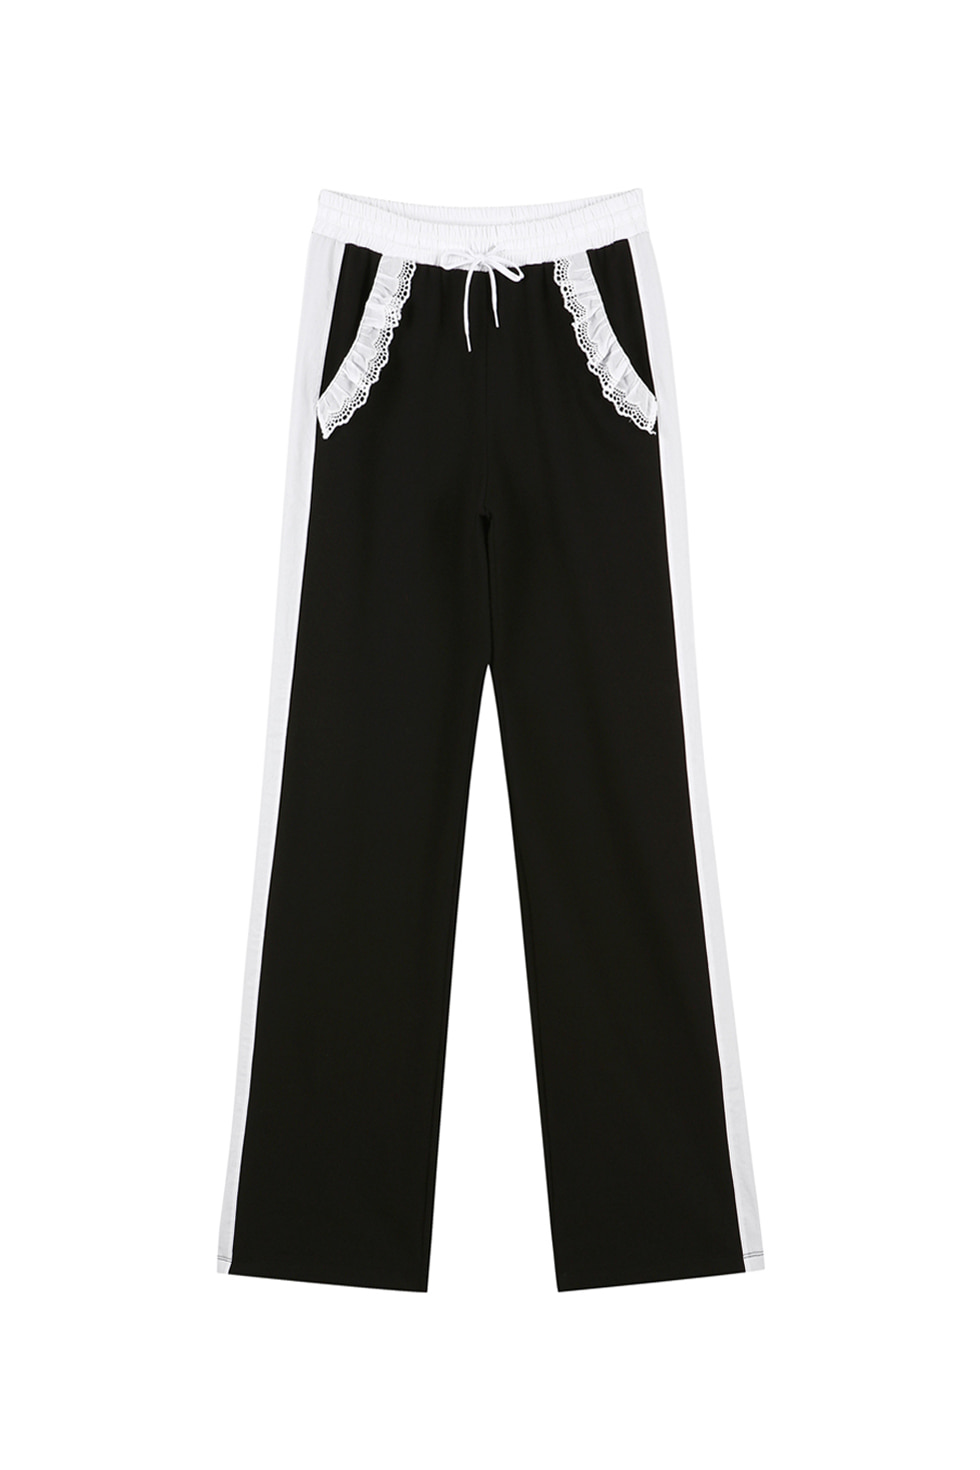 COTTON RUFFLE JERSEY PANTS - BLACK